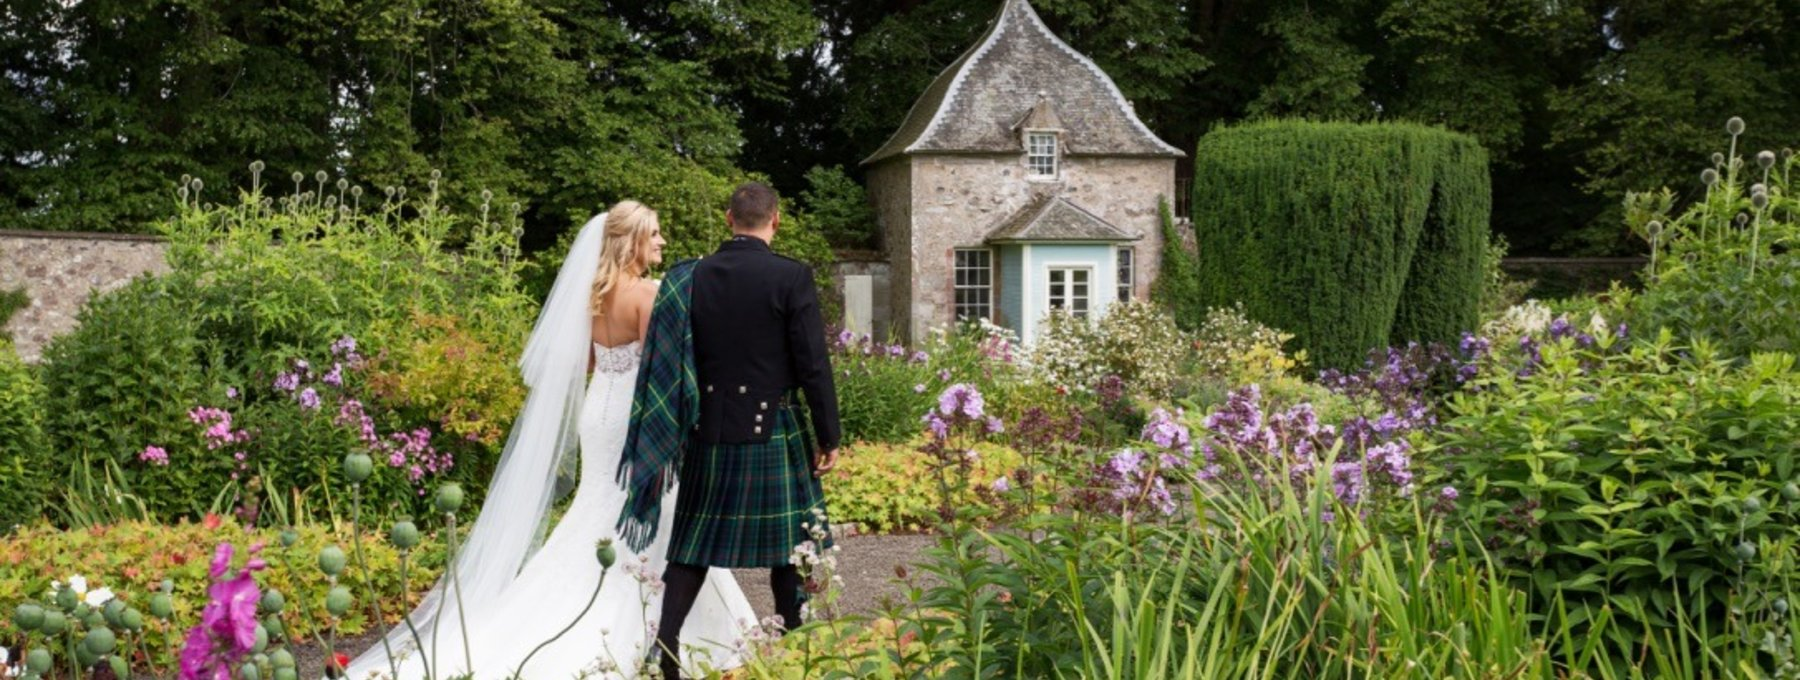 The Summer House in the Walled Garden - Murthly Castle's walled garden on Murthly Estate is a beautiful setting for your wedding reception. (© Nigel Lumsden)